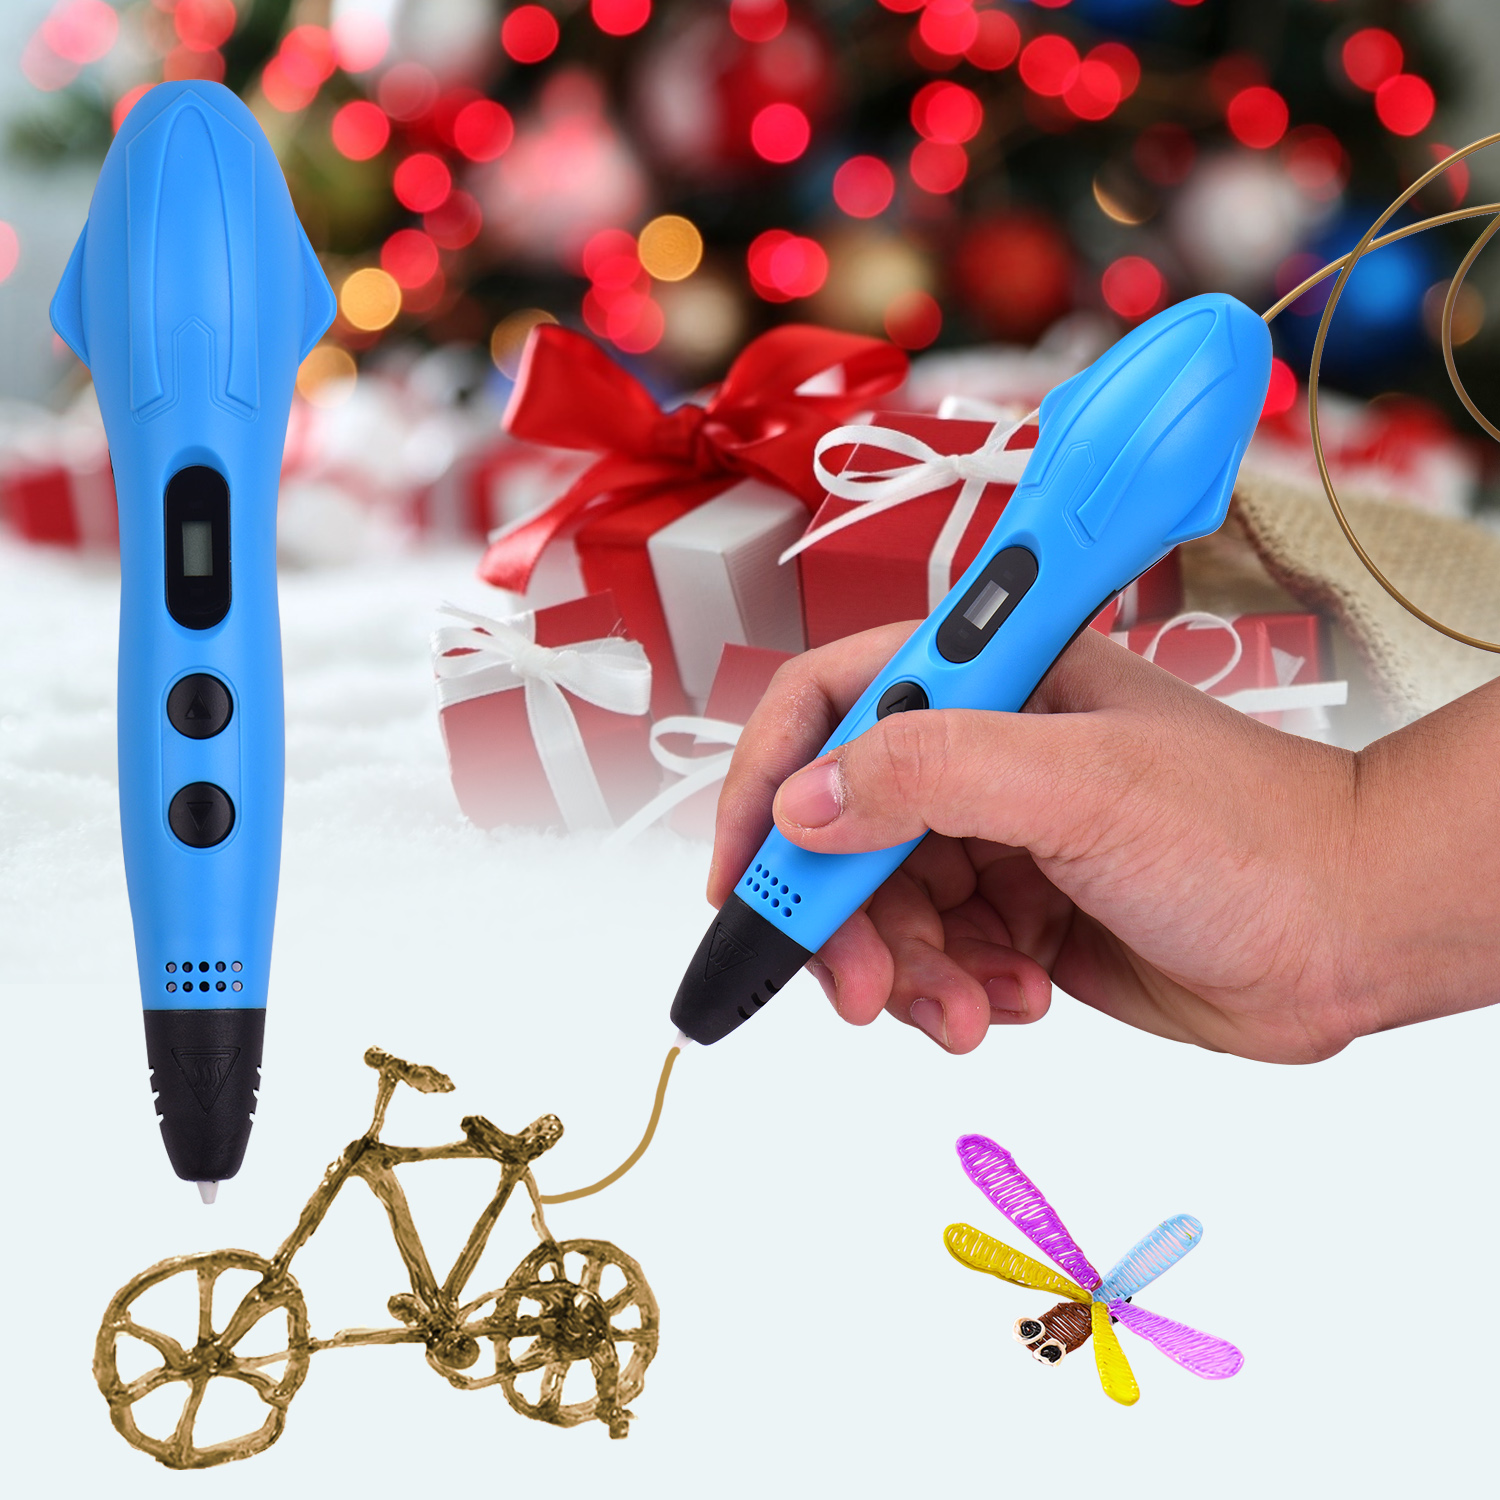 Best Birthday Holiday Gifts Toys 3D Printing Pen,with LCD Screen Display for,Temperature Control,Non-Clogging,Support Drawing in 3 Colors at The Same Time